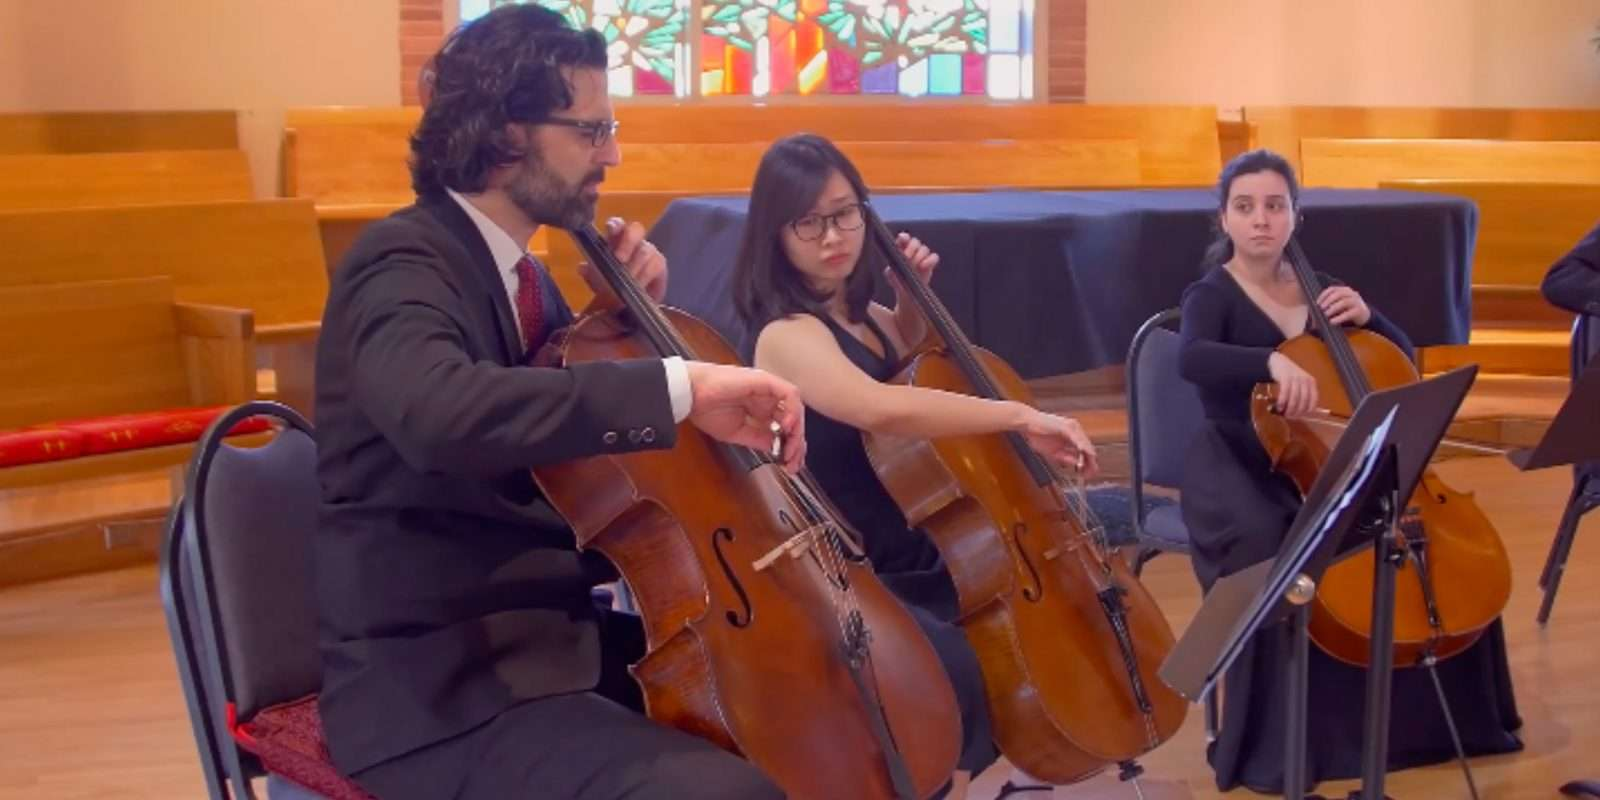 NEW TO YOUTUBE | Peabody Institute Cello Gang – Queen's 'Bohemian Rhapsody' [2019]